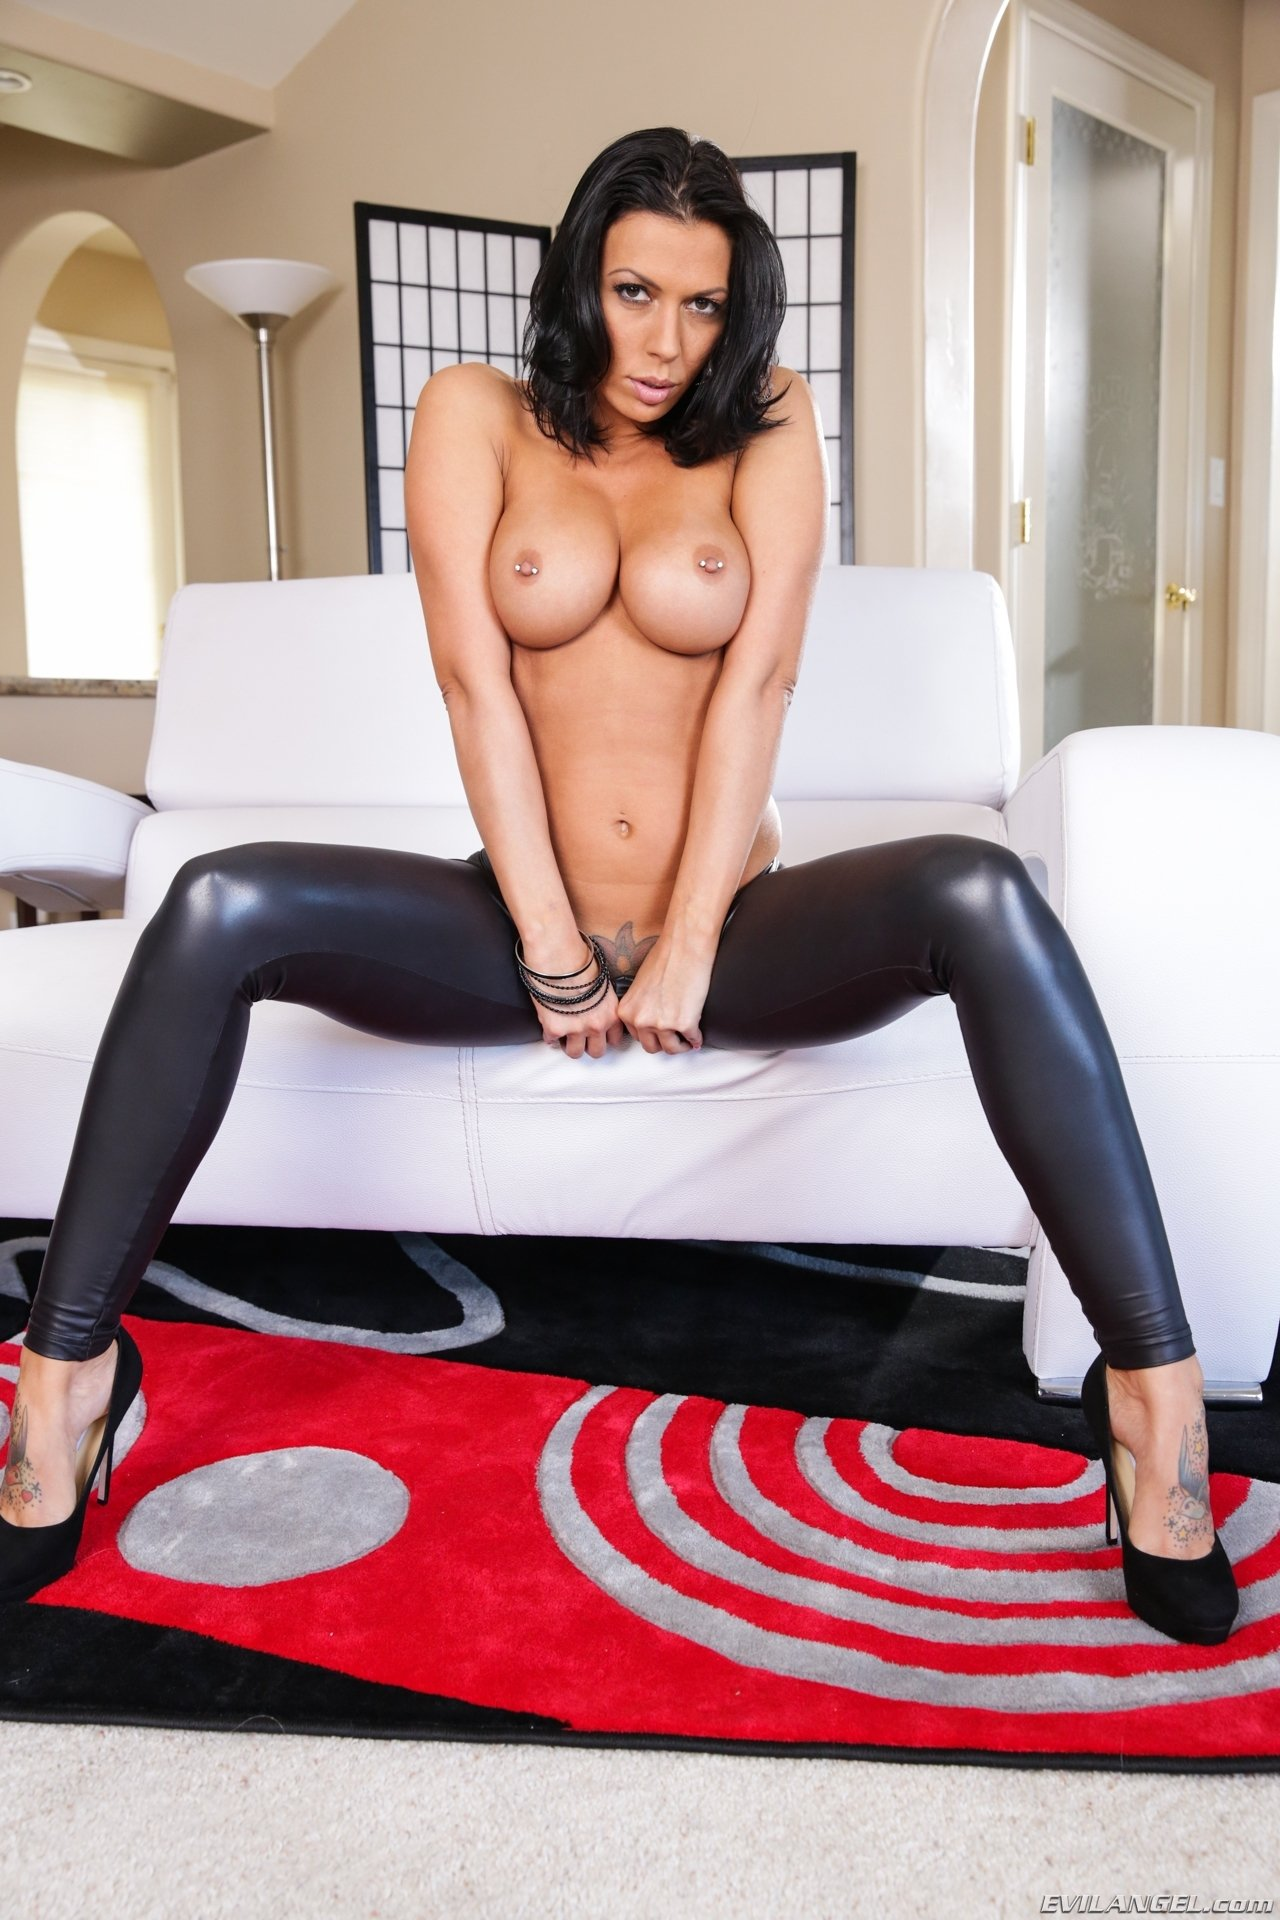 milf ebony sex videos add photo